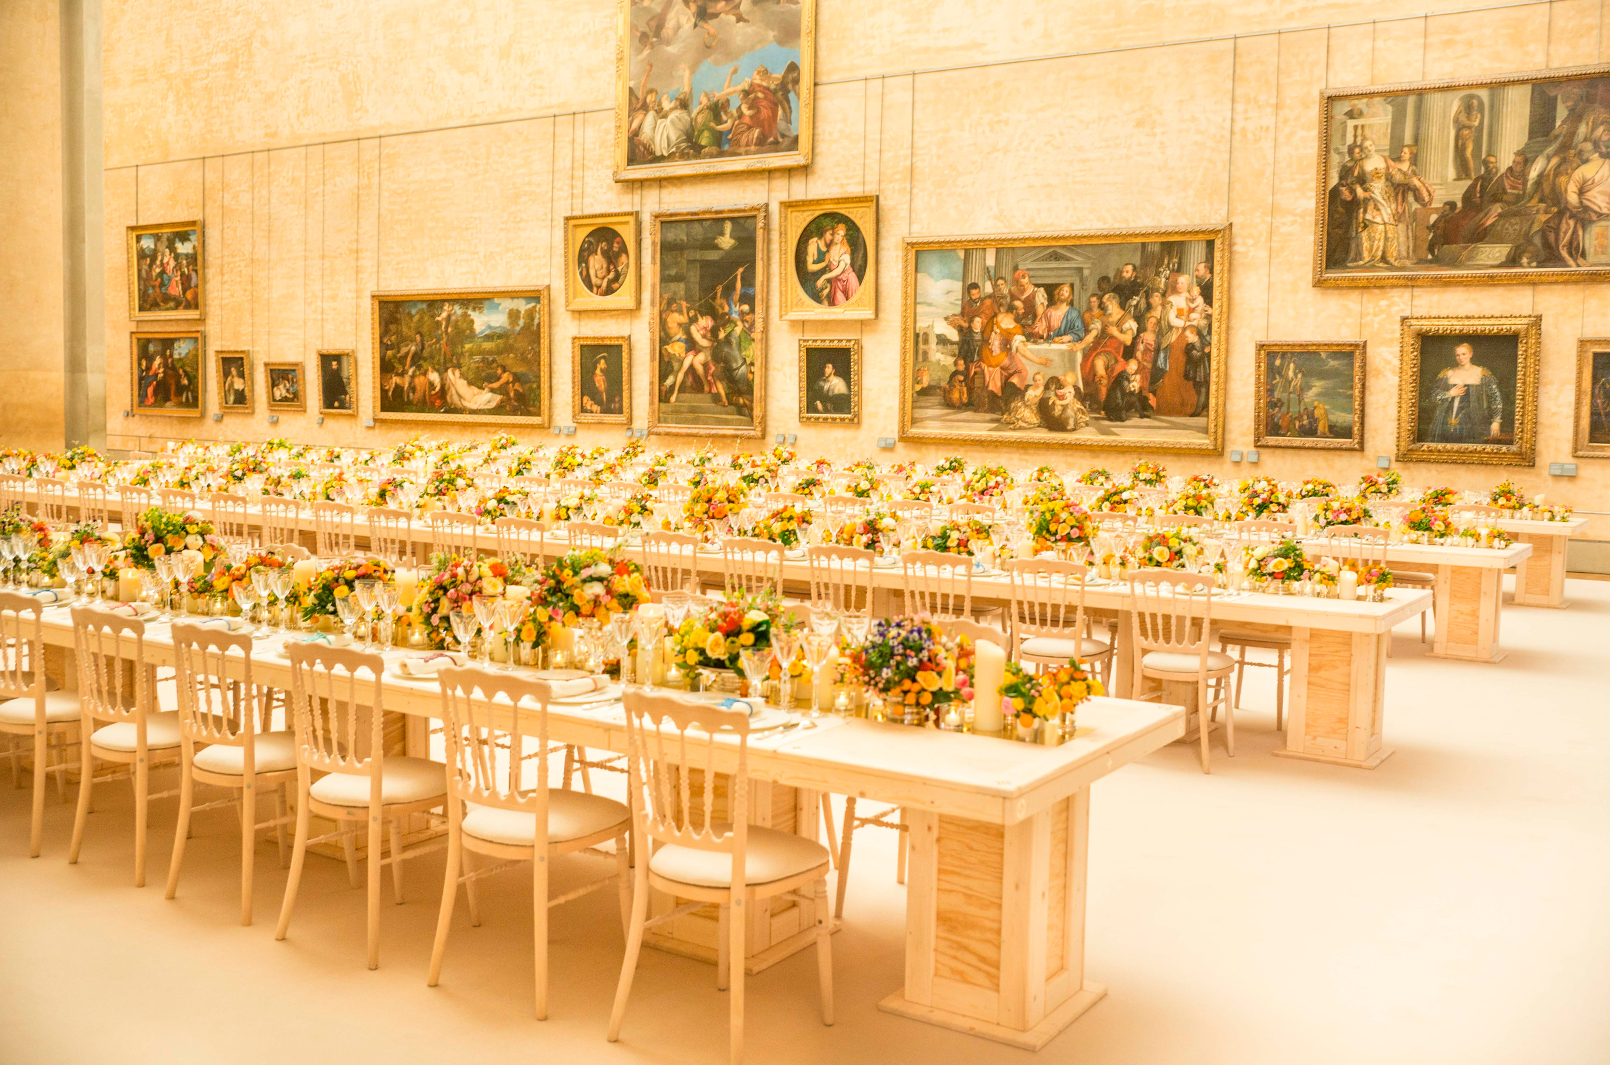 We juxtaposed rap music with the Louvre's main hall as a nod to Koons' bold artistic style.